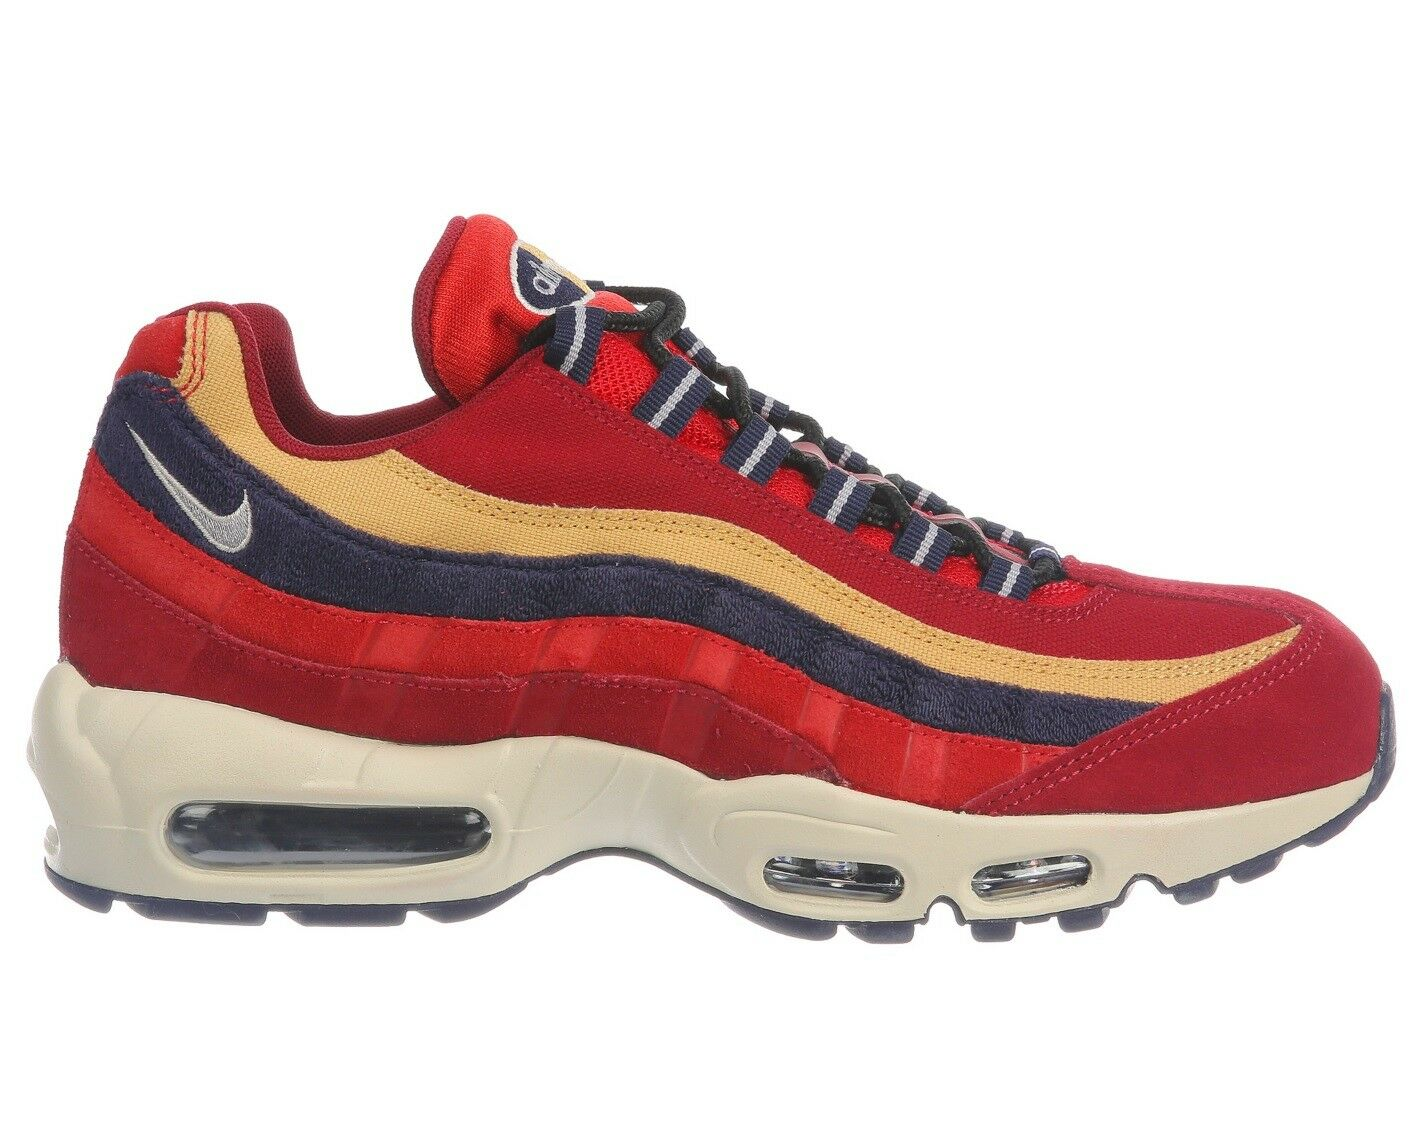 Nike Air Max 95 Premium Mens 538416-603 Red Purple Wheat Running Shoes Size 8.5